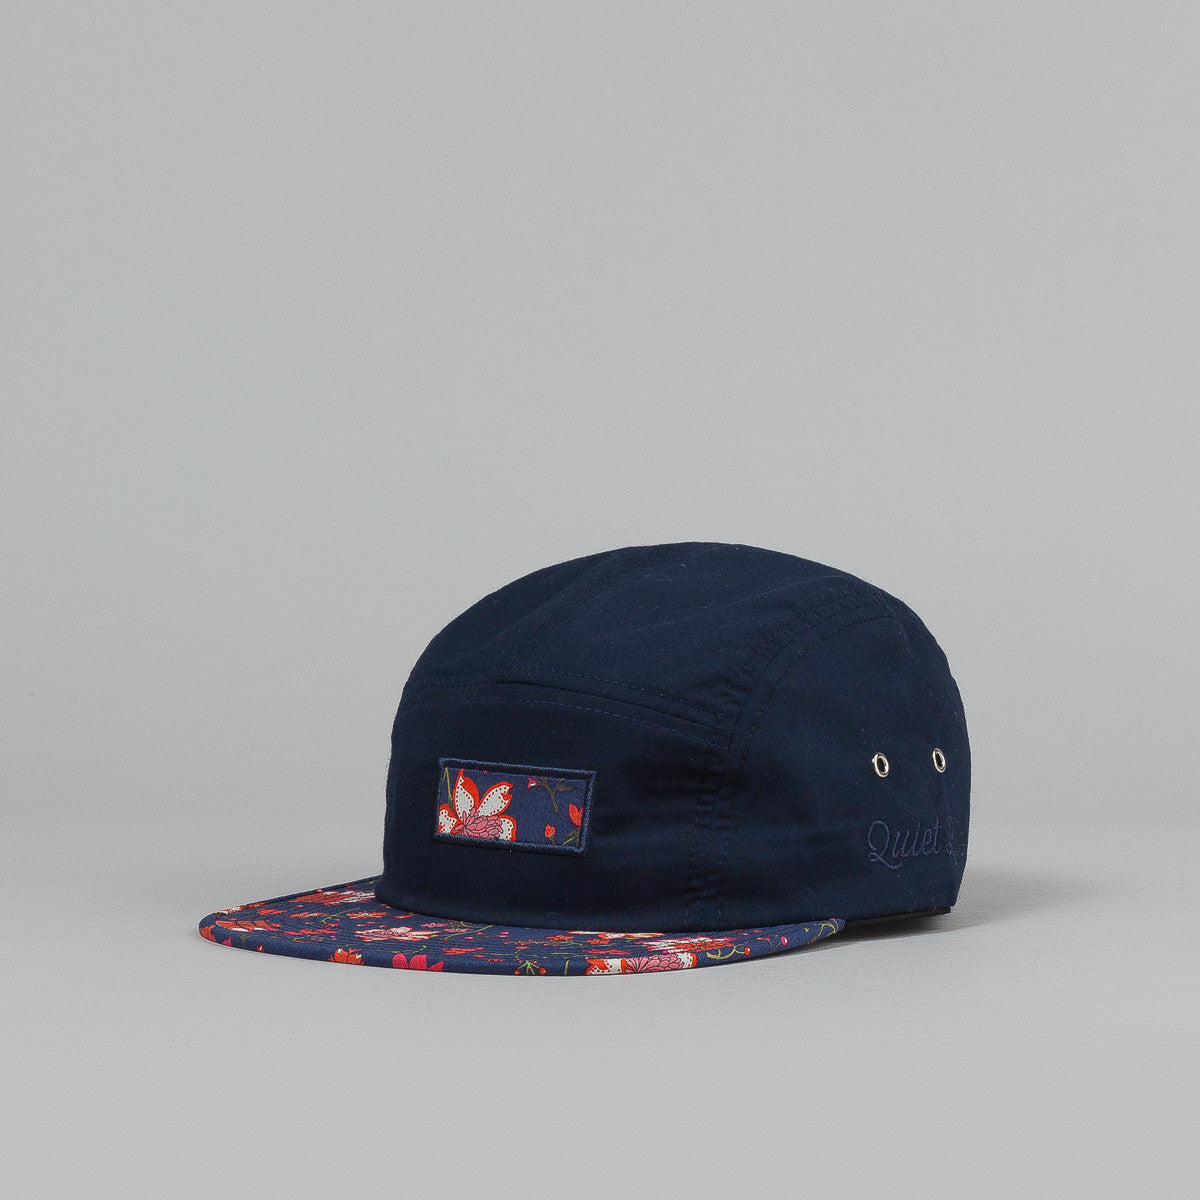 The Quiet Life Nikita 5 Panel Cap